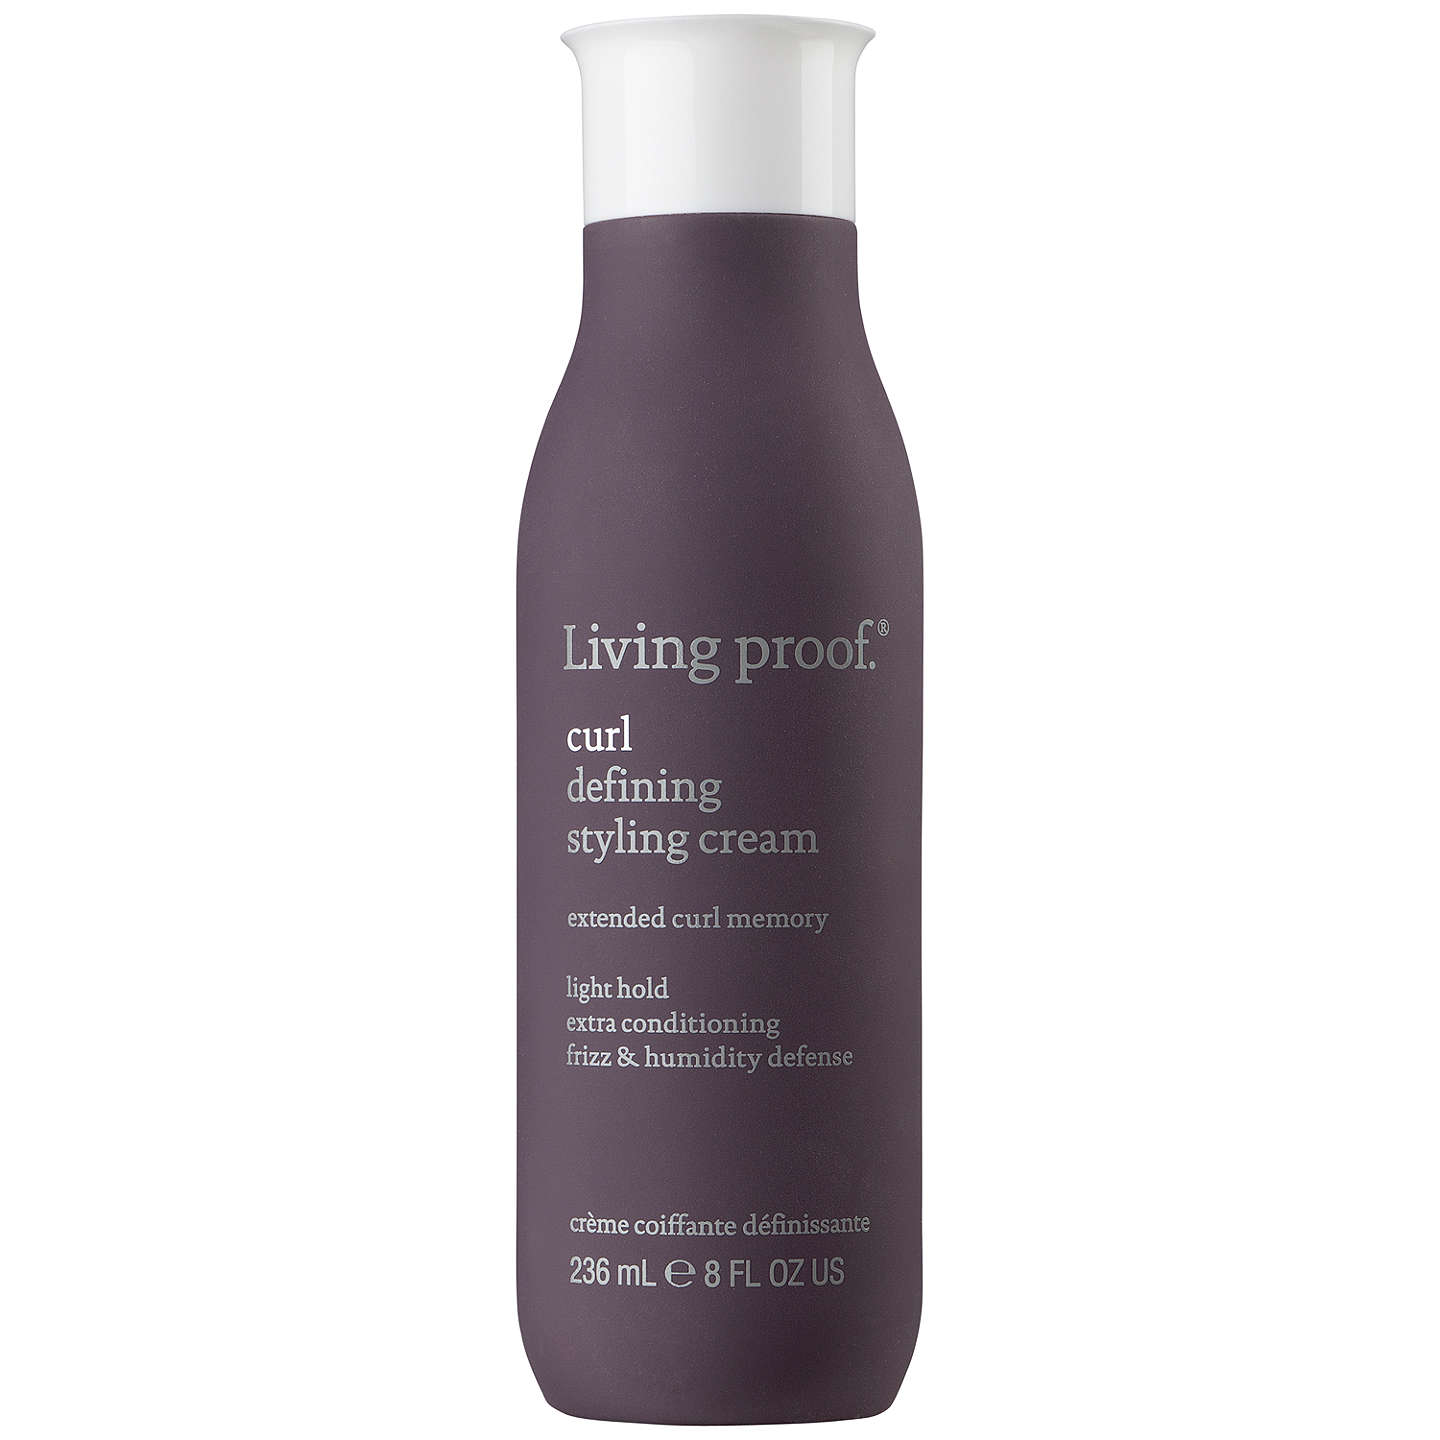 Living Proof Curl Defining Styling Cream, 236ml by Living Proof